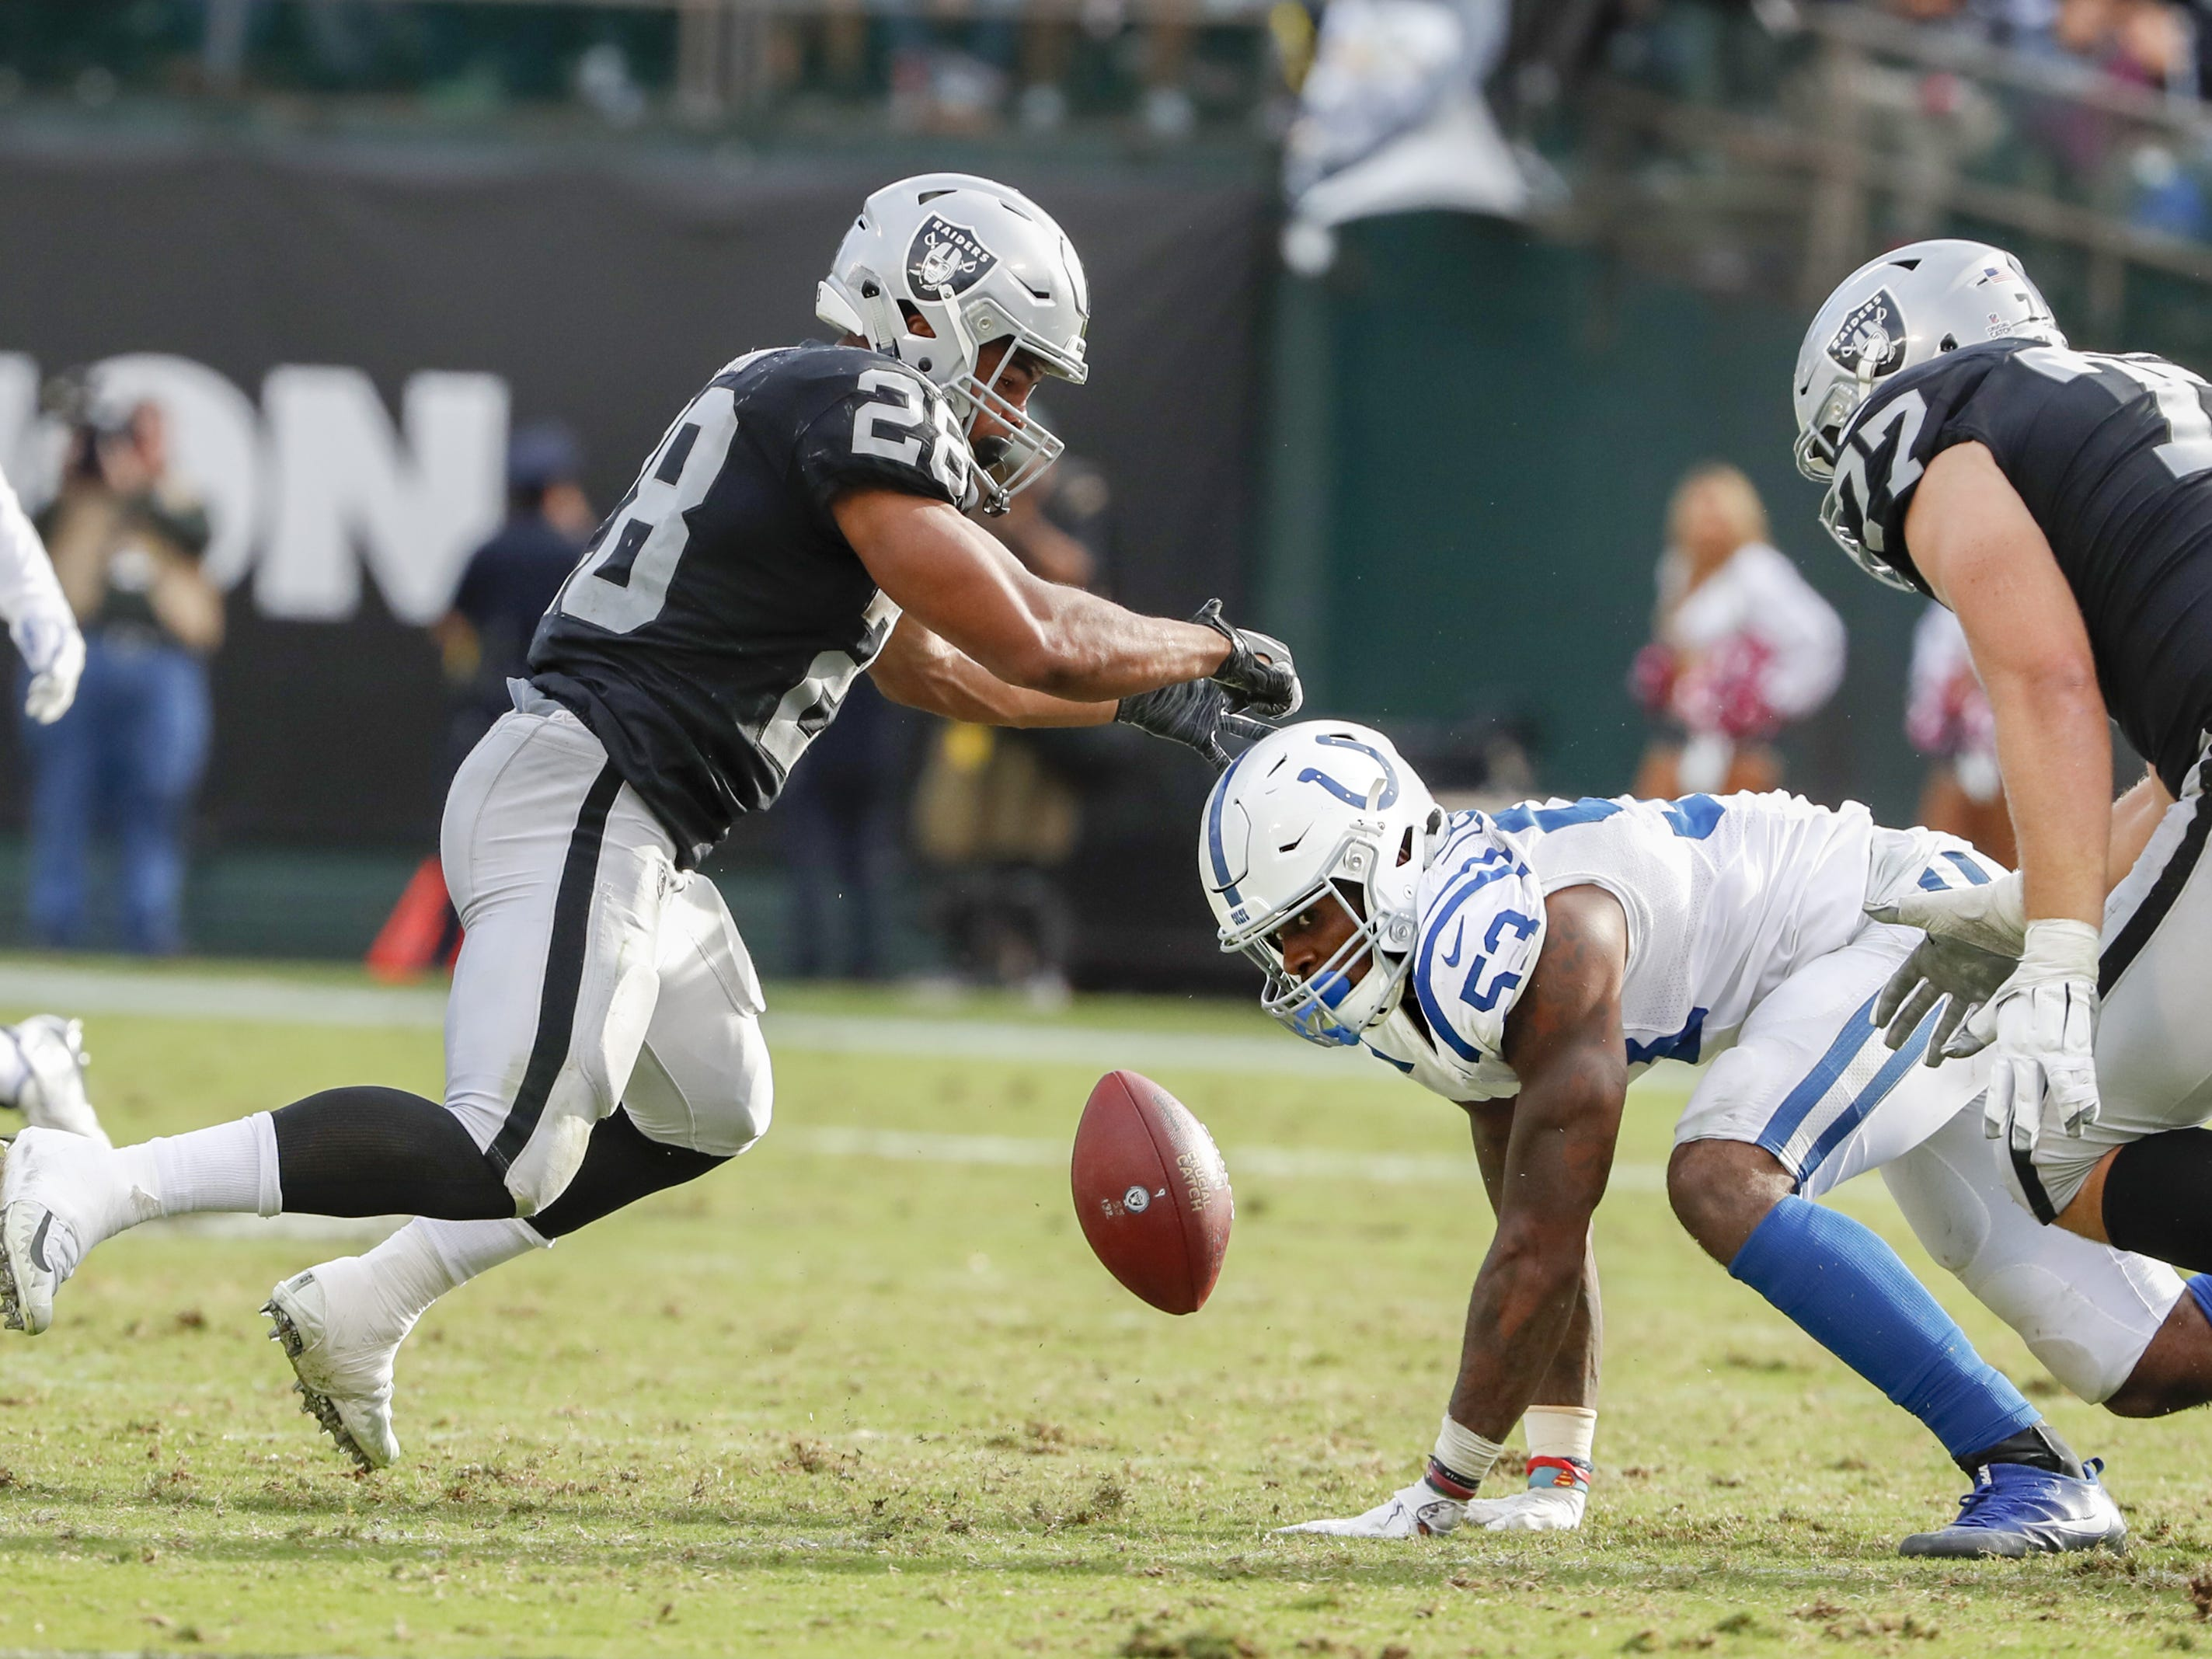 Leonard forces a fumble on Oakland Raiders running back Doug Martin duringtheir game Oct. 28 at The Coliseum in Oakland, California.